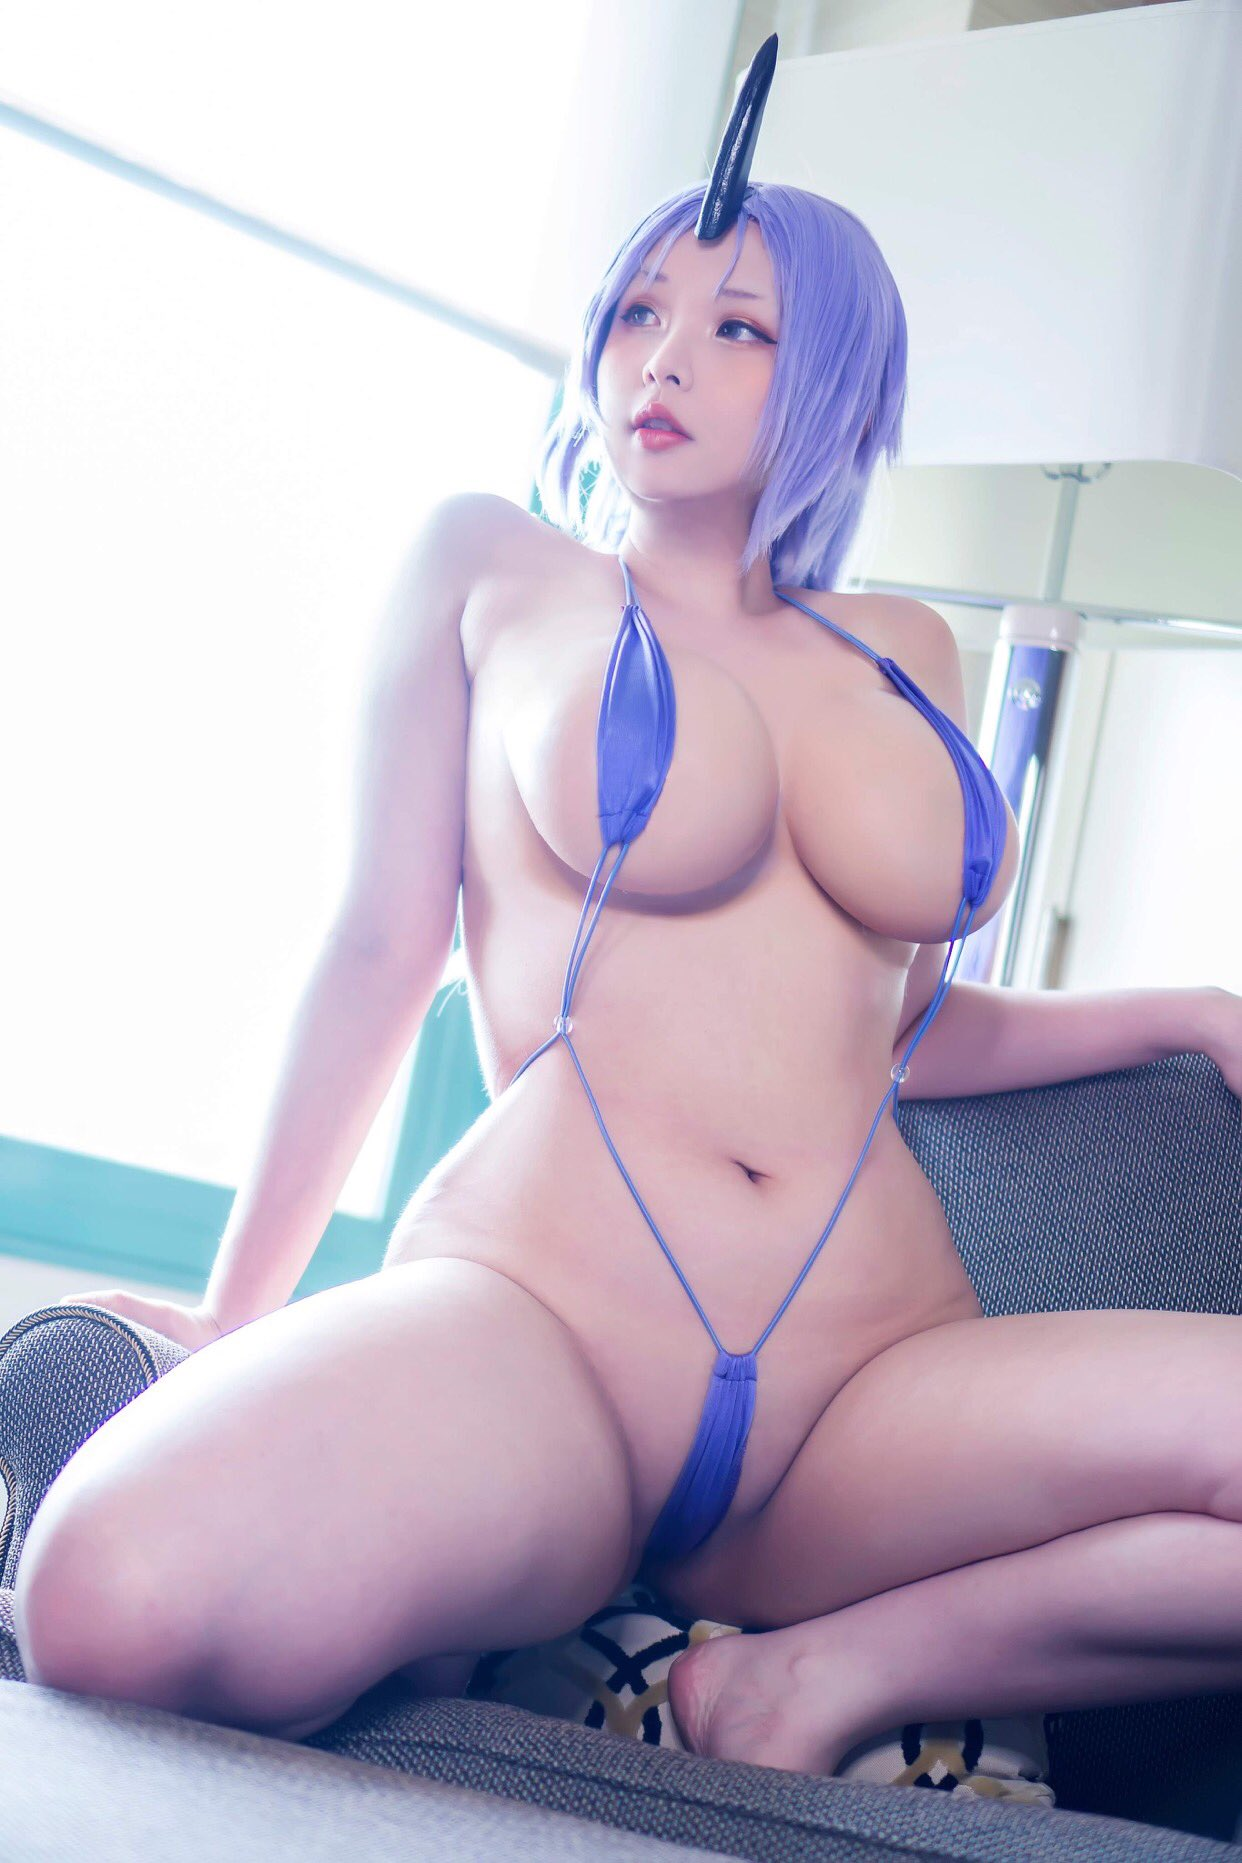 Hana Bunny As Shion From That Time I Reincarnated As A Slime